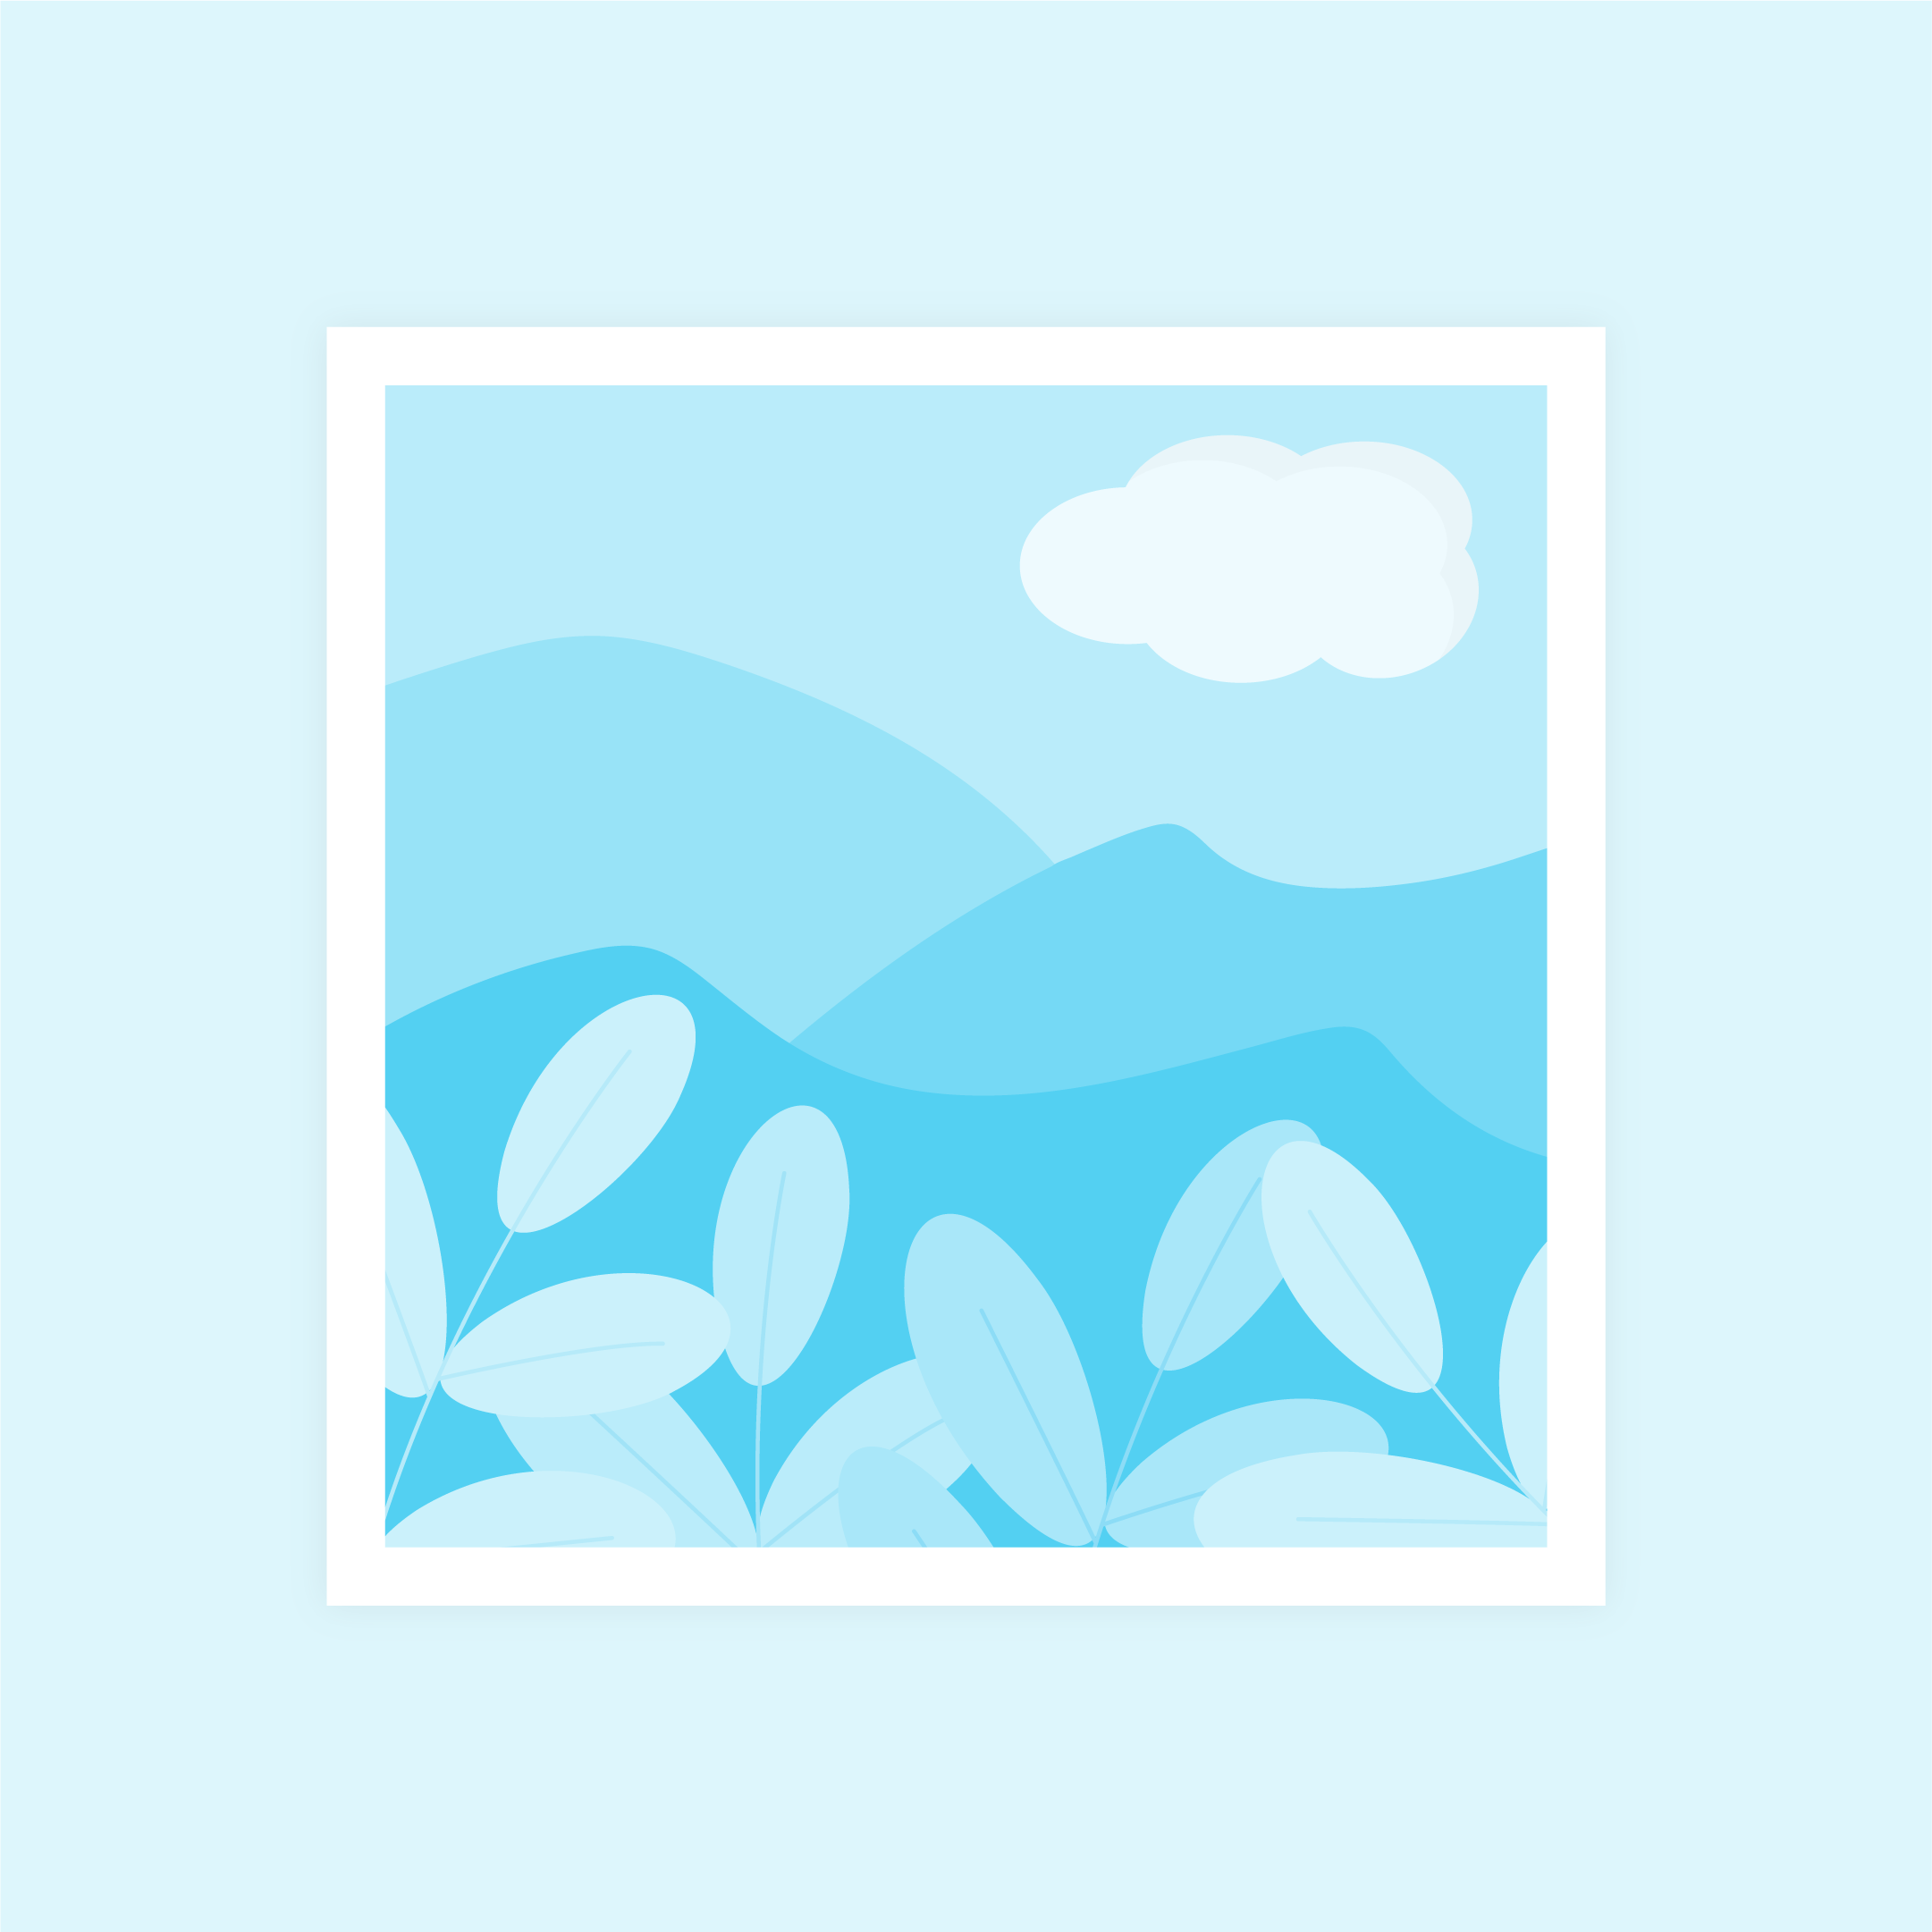 Vector illustration of a blue monochromatic abstract landscape with a cloud in flat design style